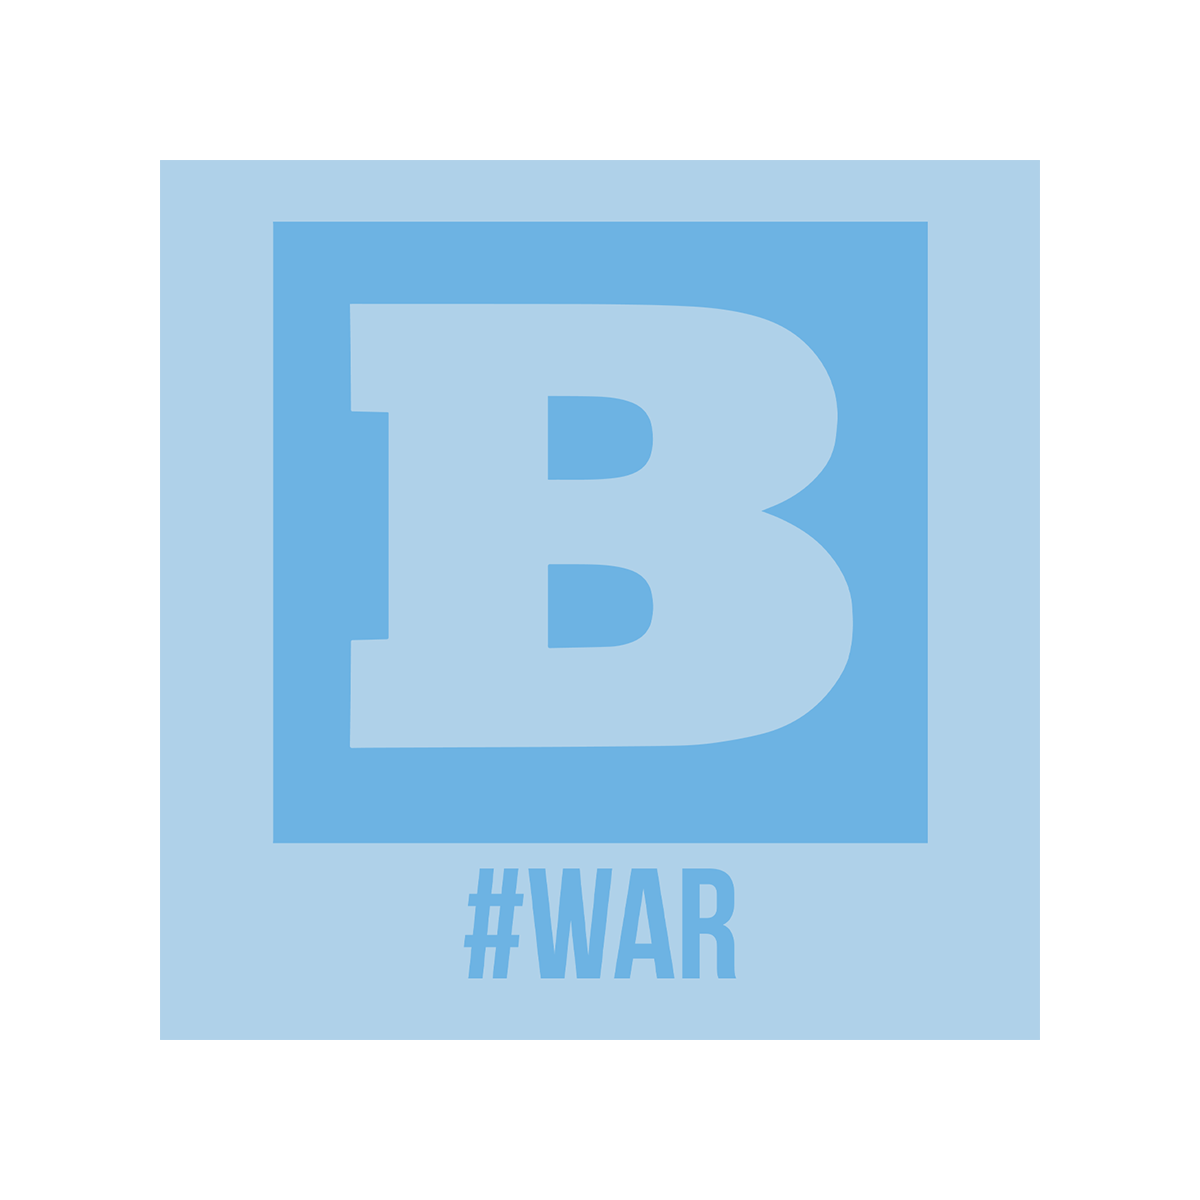 Breitbart #WAR Women's T-Shirt - Light Blue